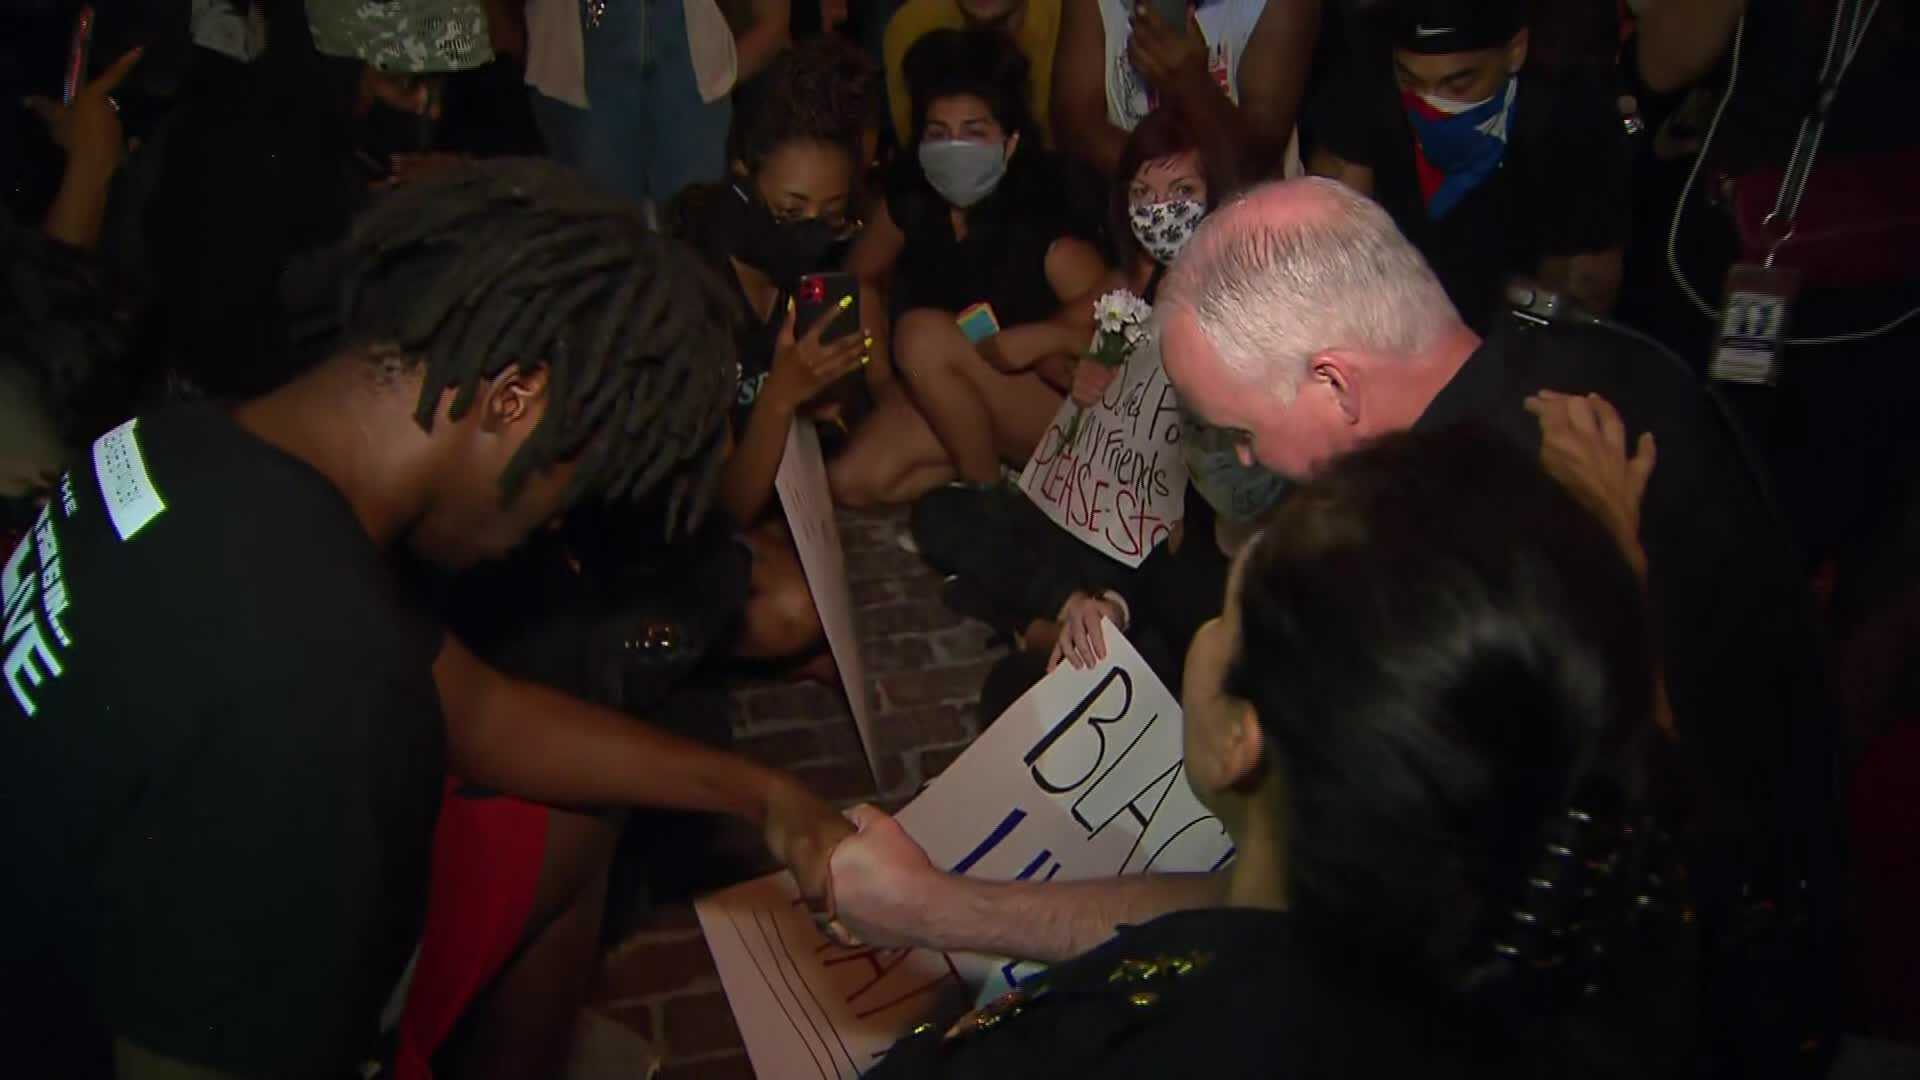 Fort Worth Police Chief Ed Kraus takes a knee with protesters in Fort Worth, Texas, on June 2.